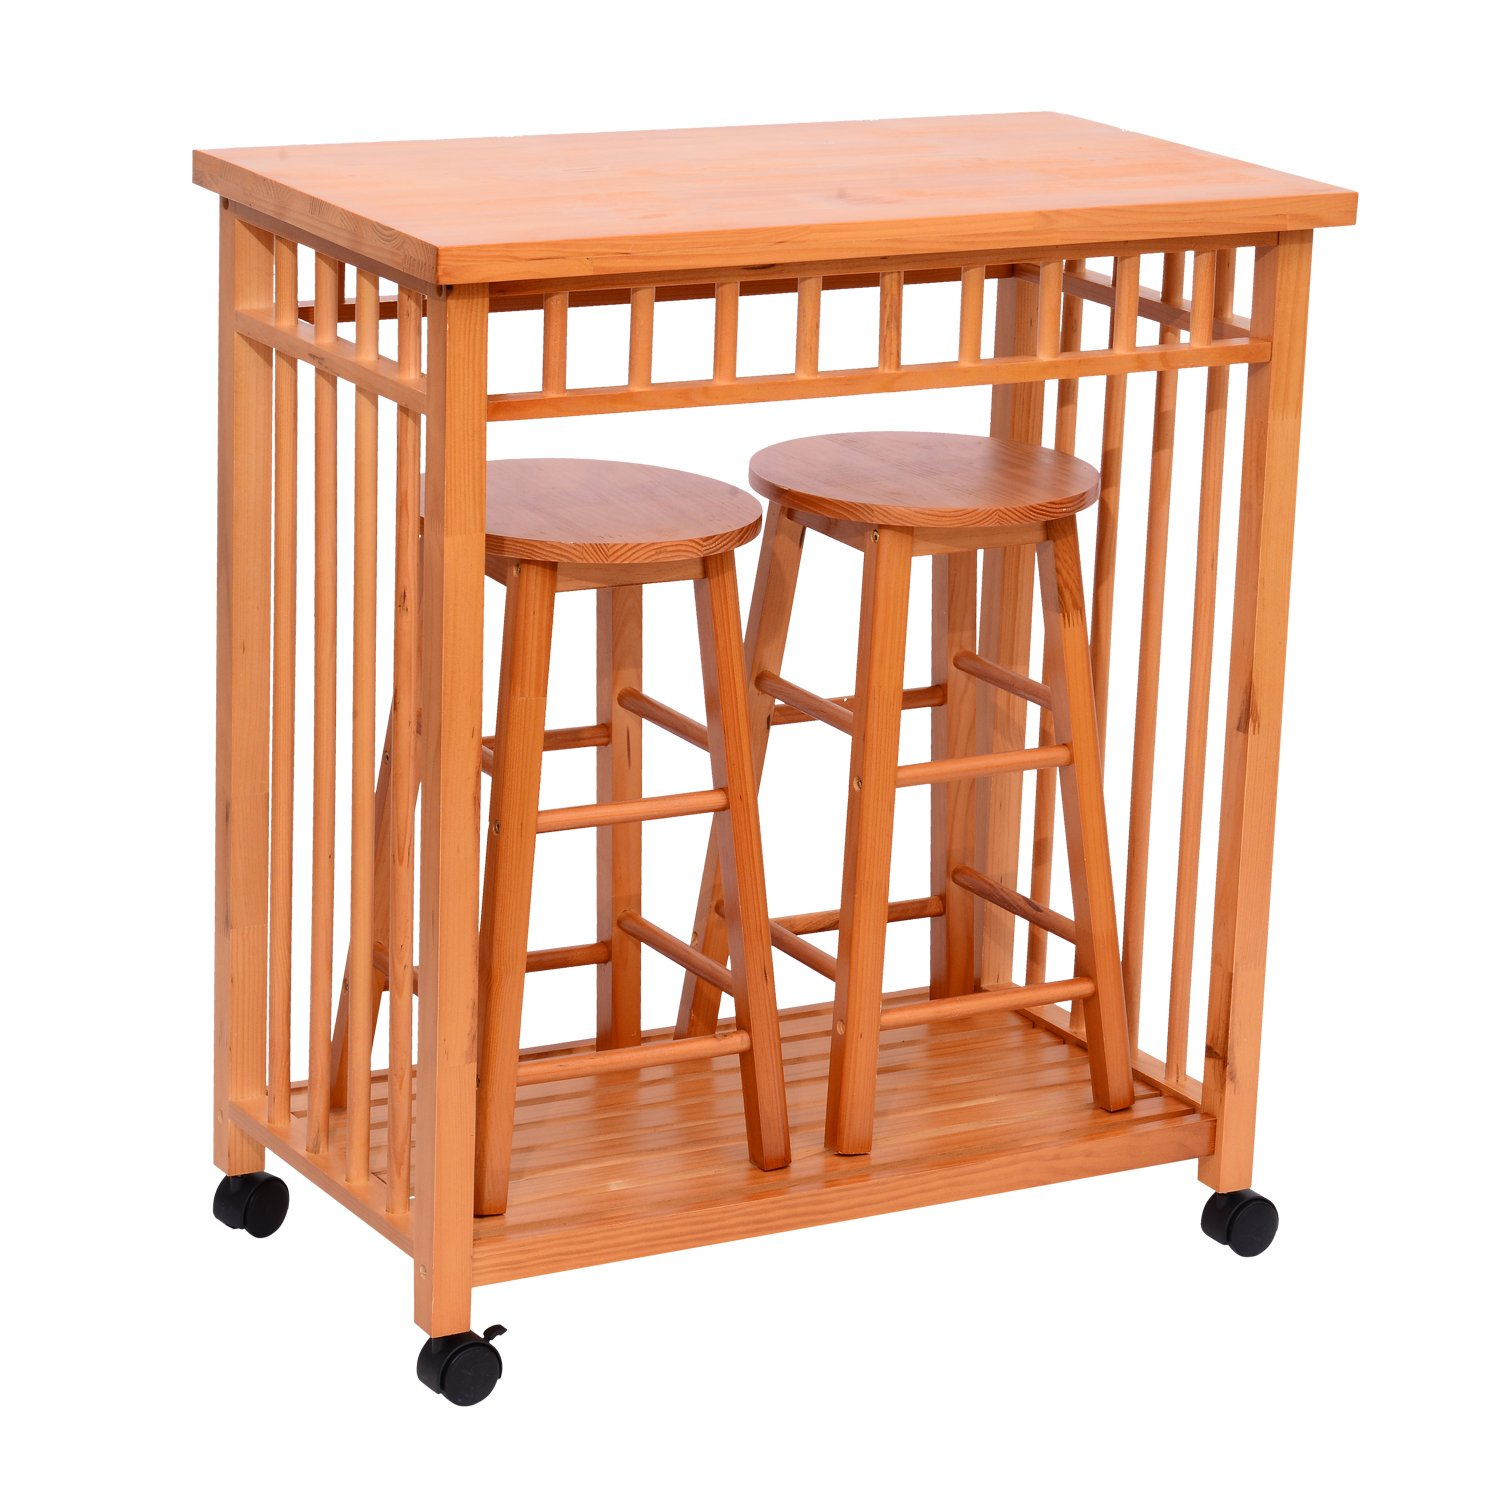 Amazon.com Homcom 32  Rolling Wooden Storage Cart Kitchen Trolley w/ Stools Home u0026 Kitchen  sc 1 st  Amazon.com & Amazon.com: Homcom 32